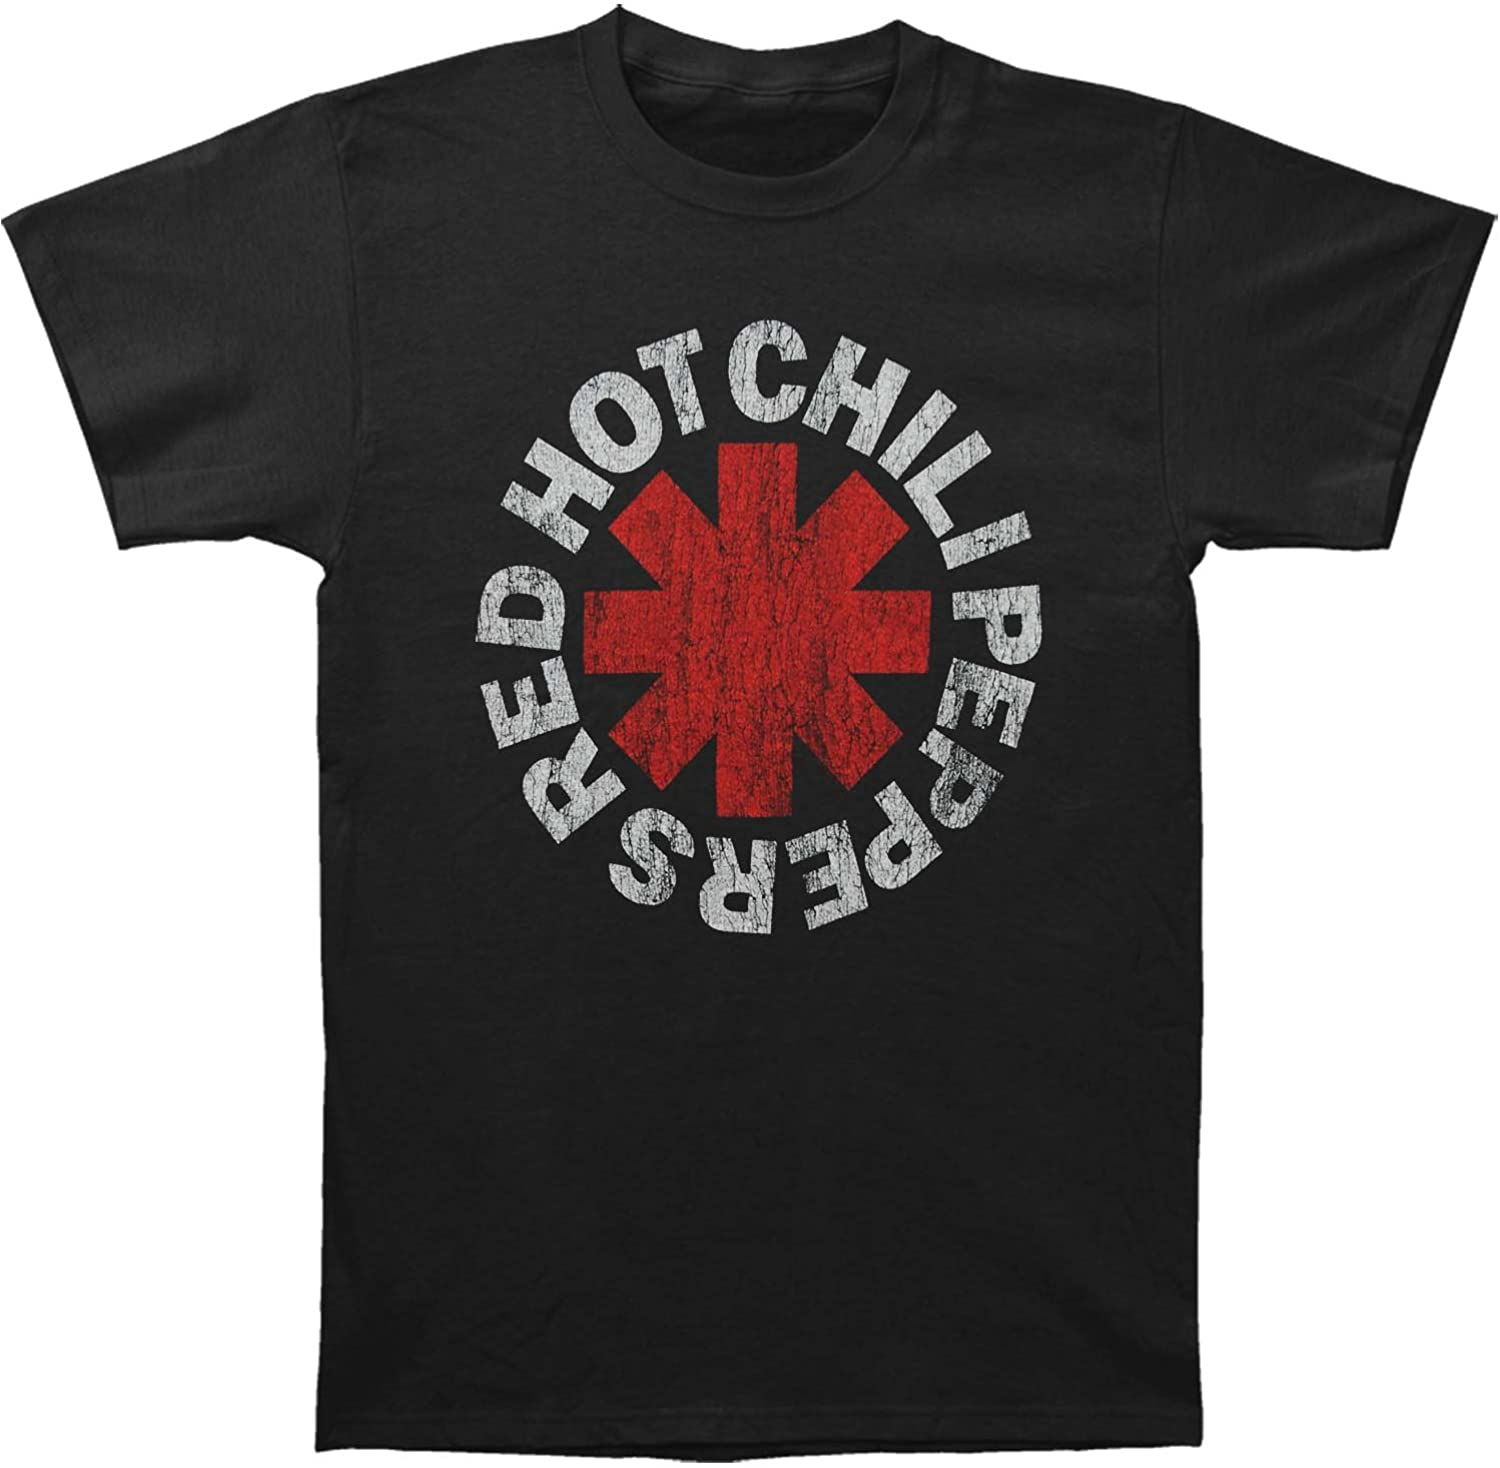 Men's Red Hot Chili Peppers Men's Short Sleeve T-Shirt Mens T Shirts Casual Cotton Breathable Funny